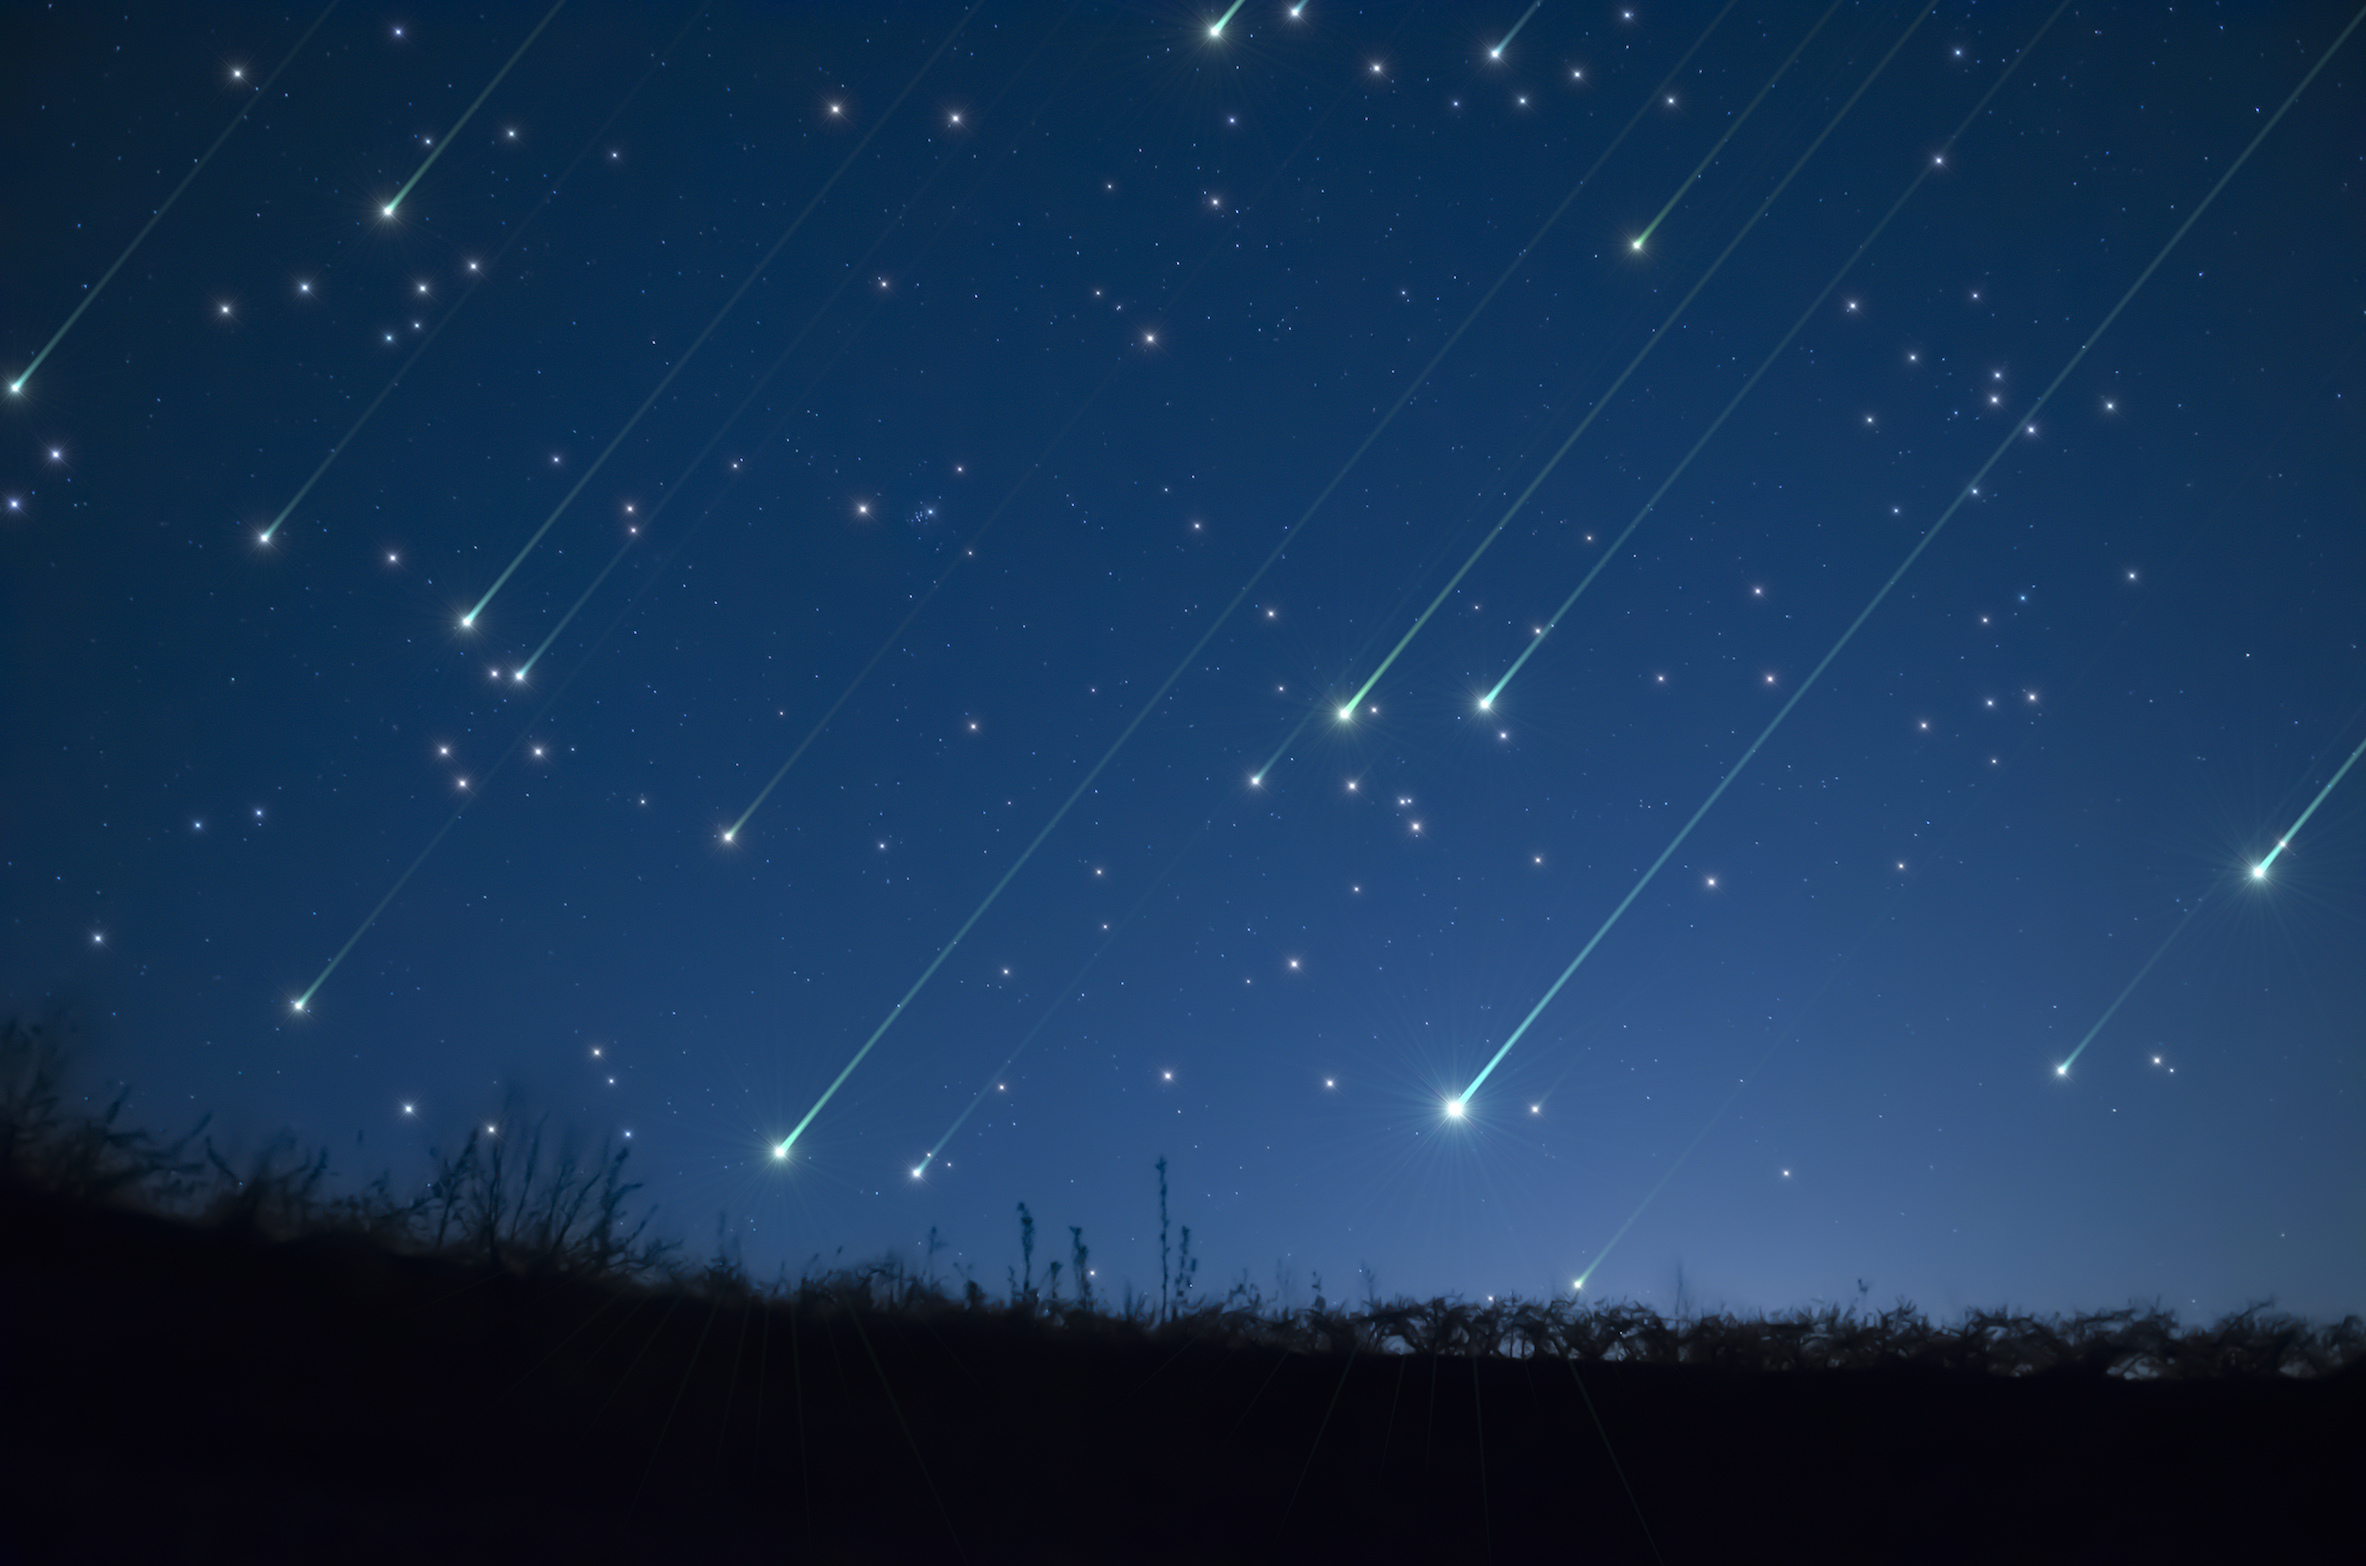 Producing up to 40 shooting stars per hour, the Eta Aquarids meteor shower will put on a beautiful light show tonight.